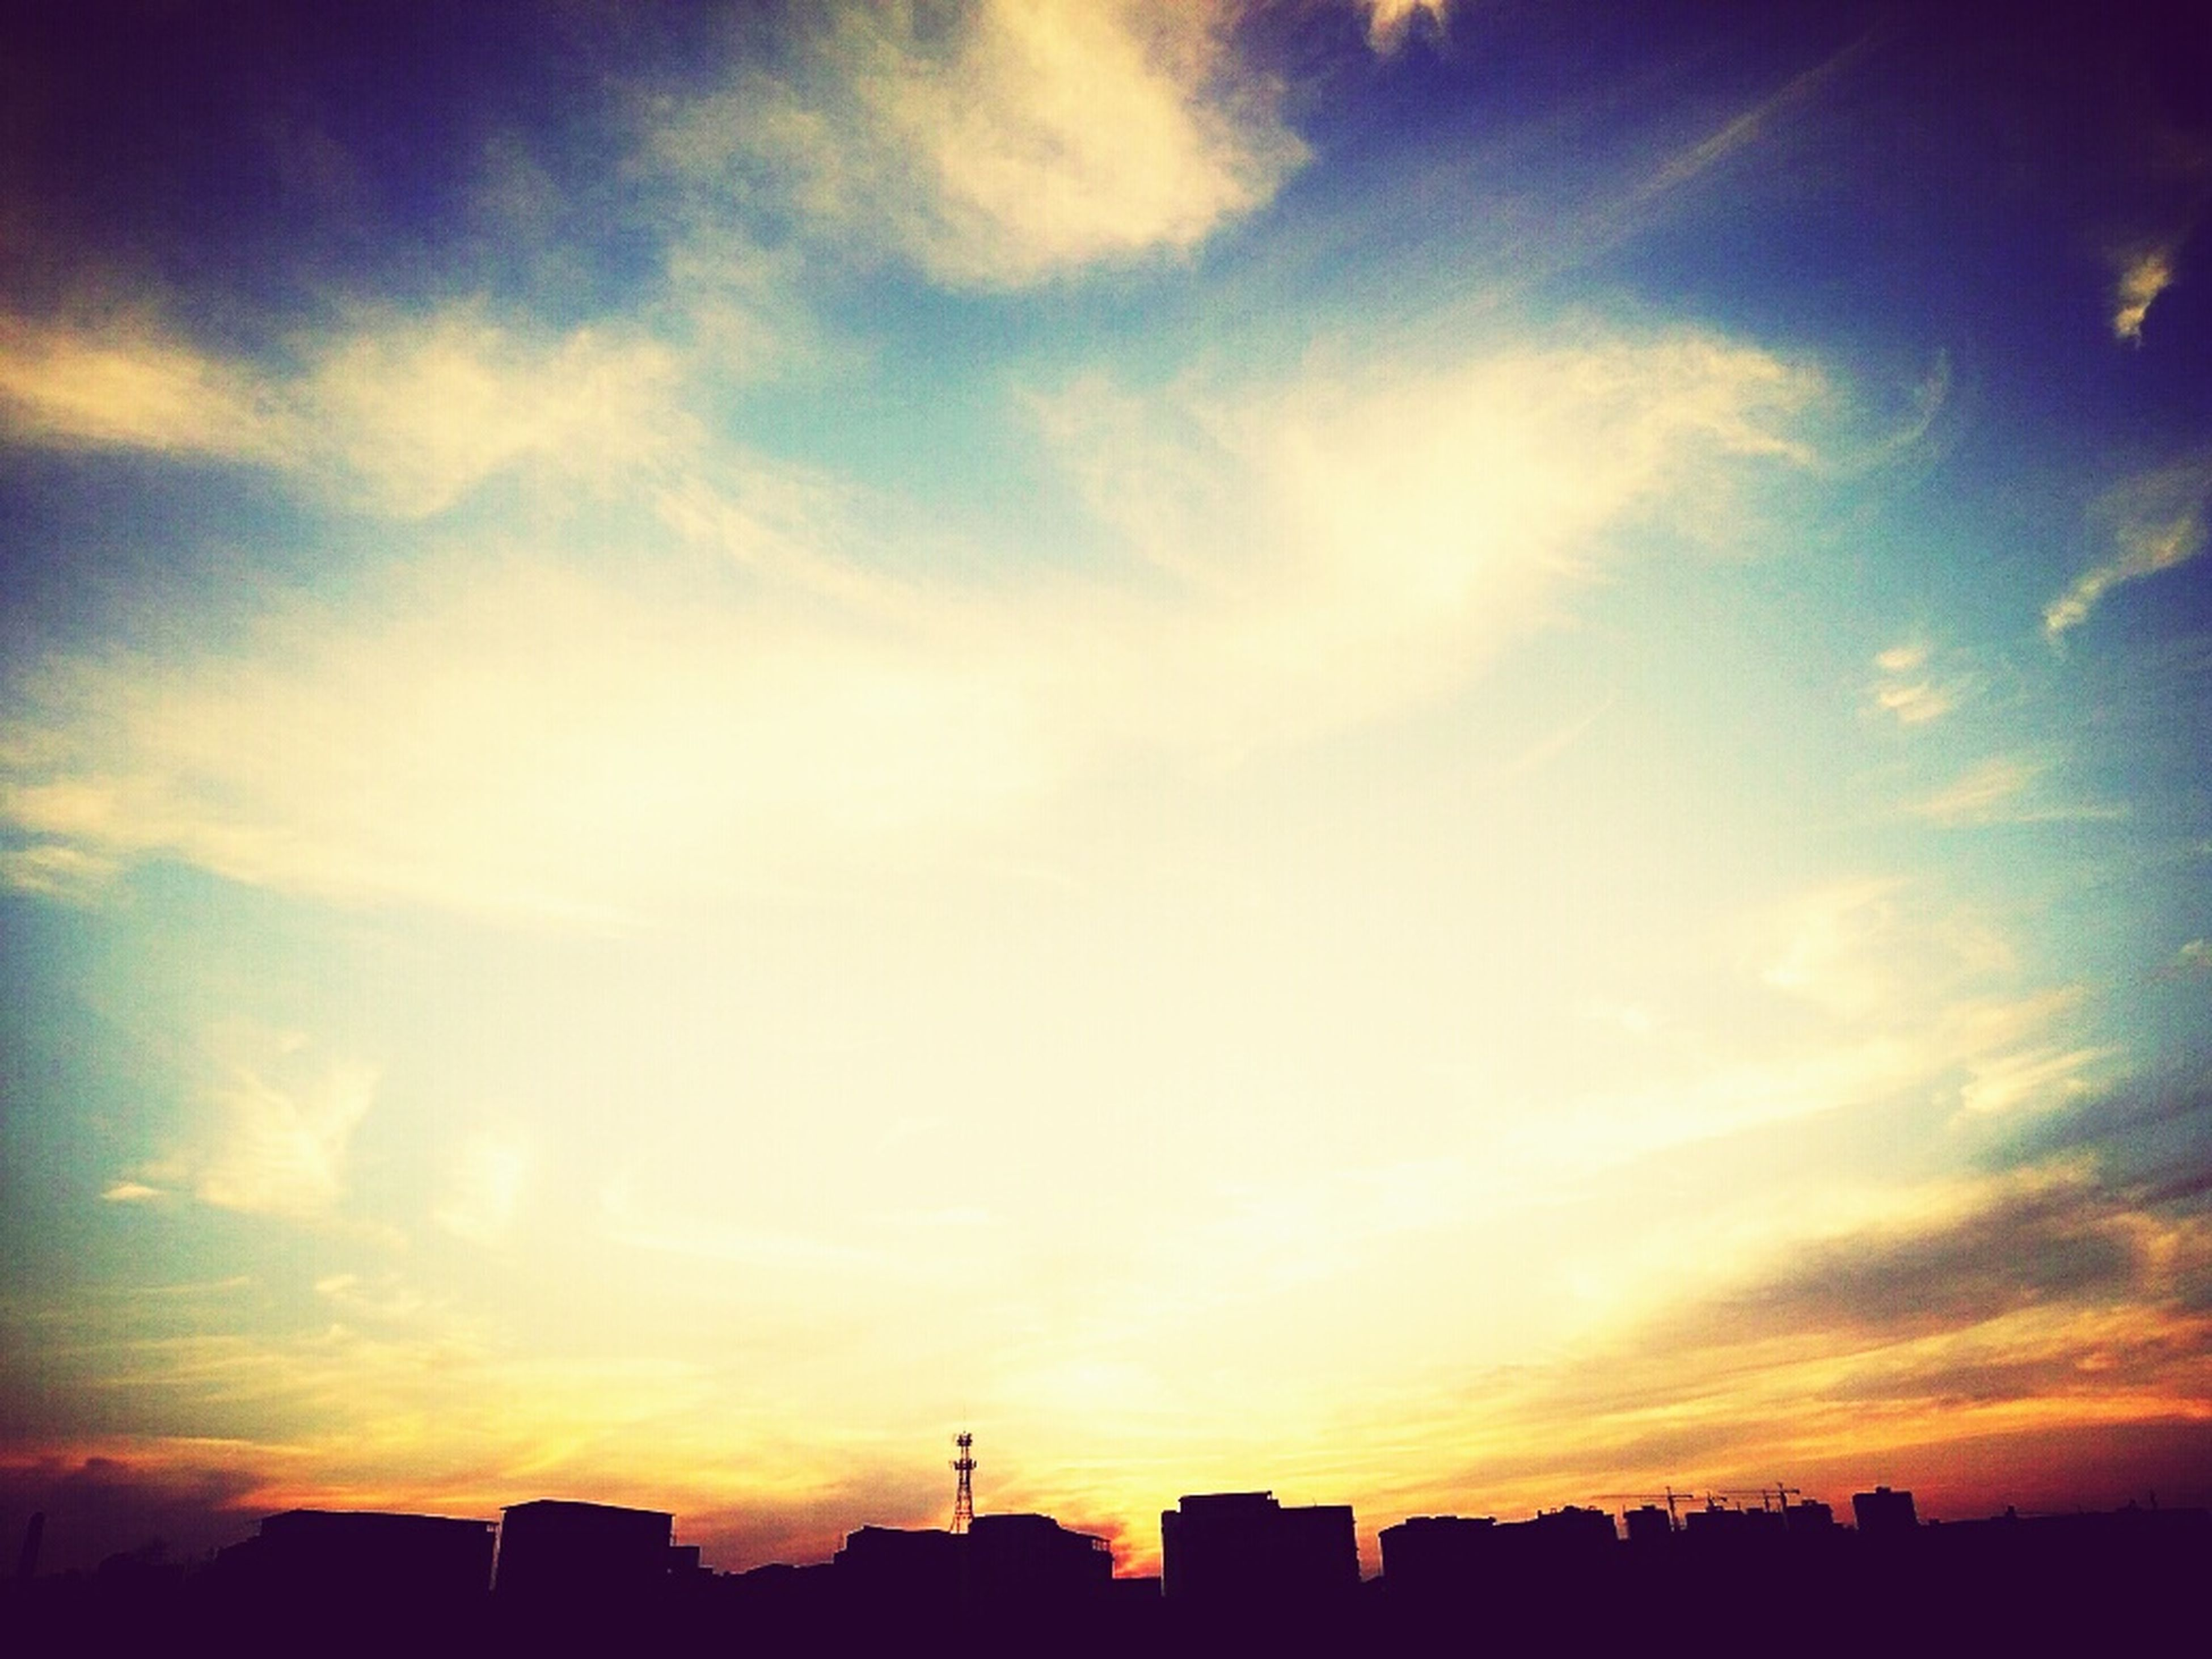 sunset, silhouette, building exterior, sky, architecture, built structure, orange color, cloud - sky, city, scenics, beauty in nature, sun, sunlight, cloud, nature, tranquility, tranquil scene, outdoors, cityscape, low angle view